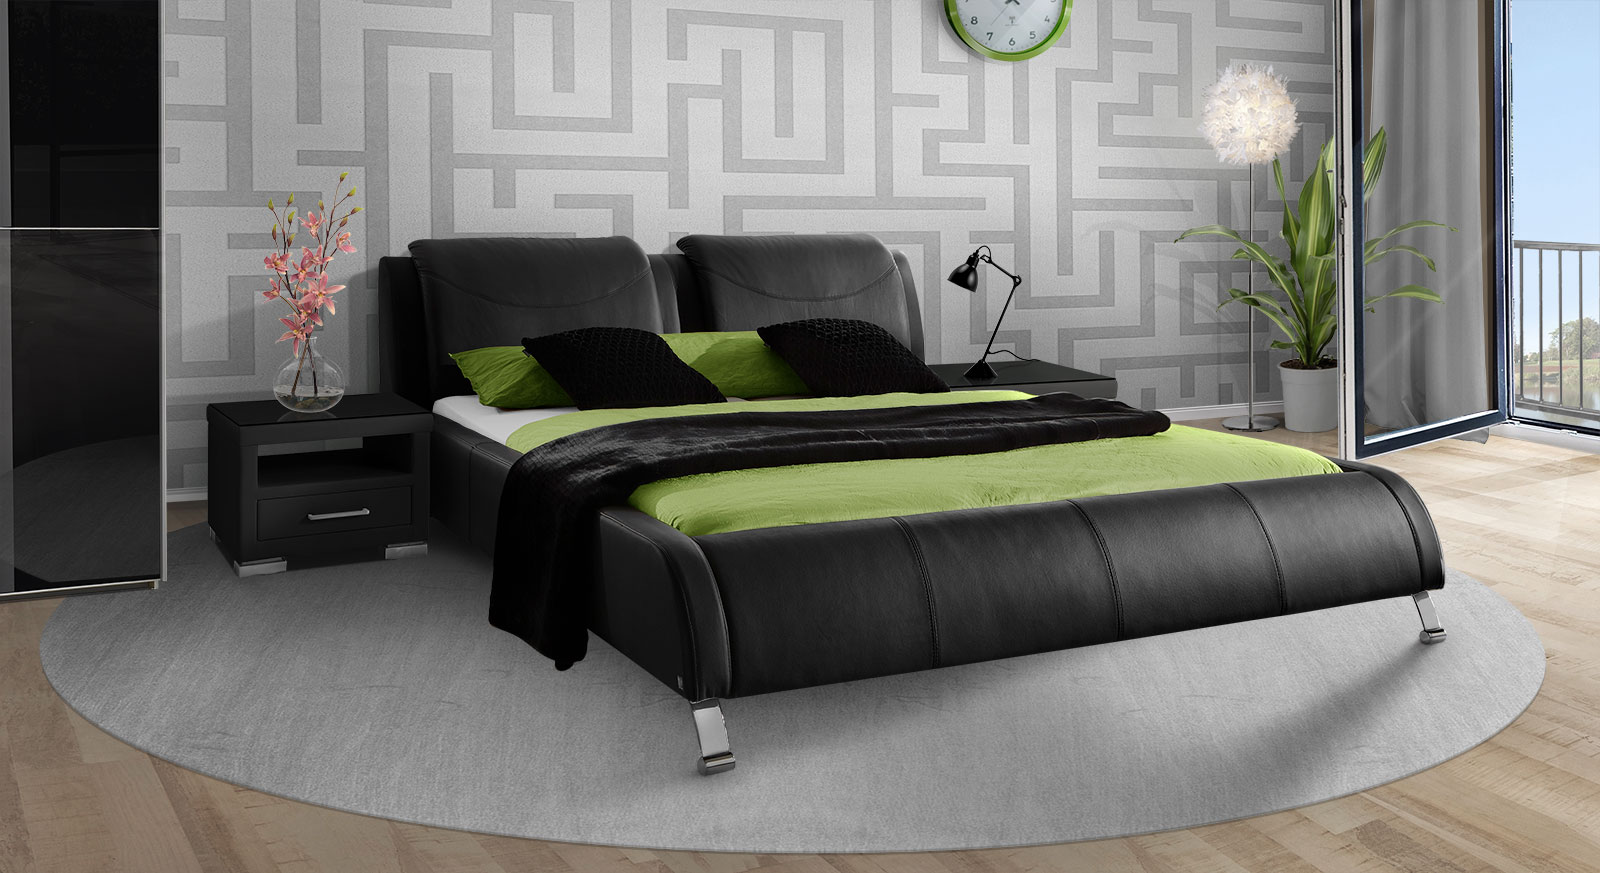 exklusive designerbetten im test und vergleich 2018 bei. Black Bedroom Furniture Sets. Home Design Ideas